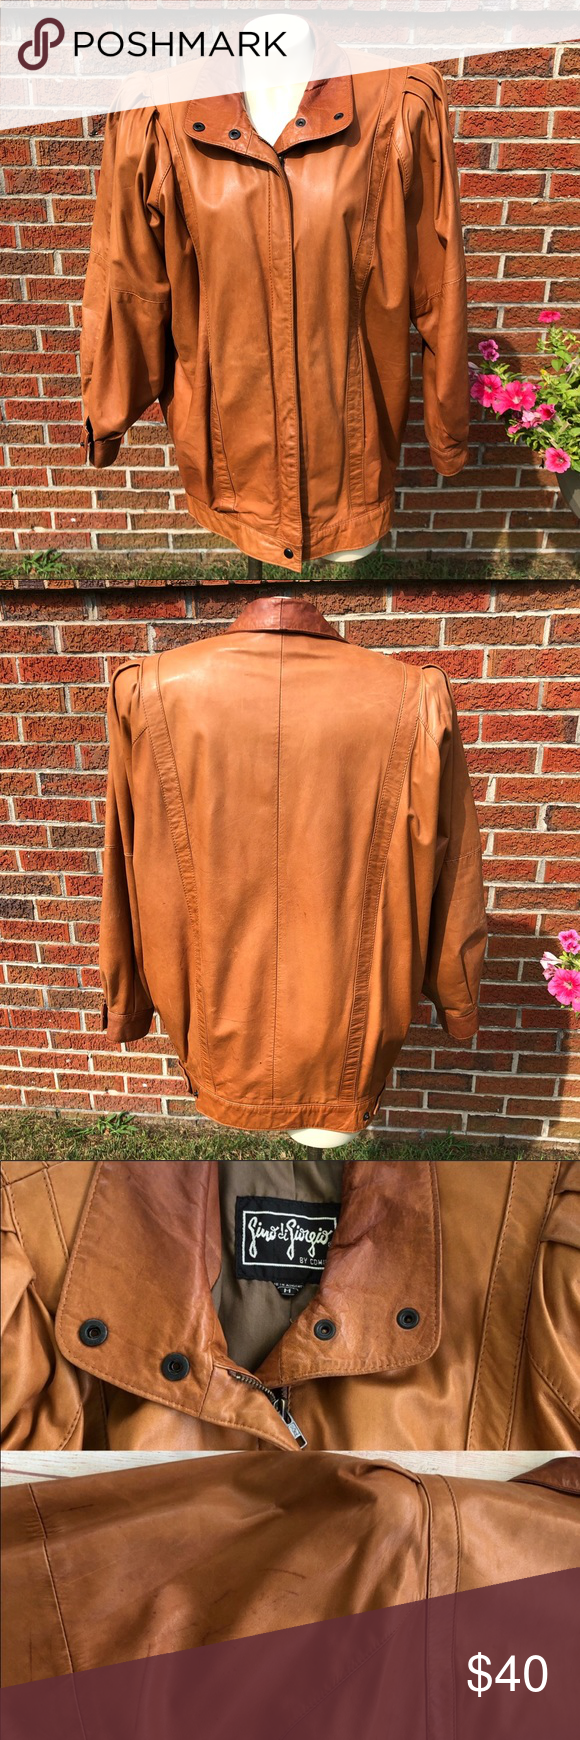 Gino Di Giorgio By Comint Vintage Brown Leather M Brown Leather Jacket Vintage Brown Brown Leather [ 1740 x 580 Pixel ]